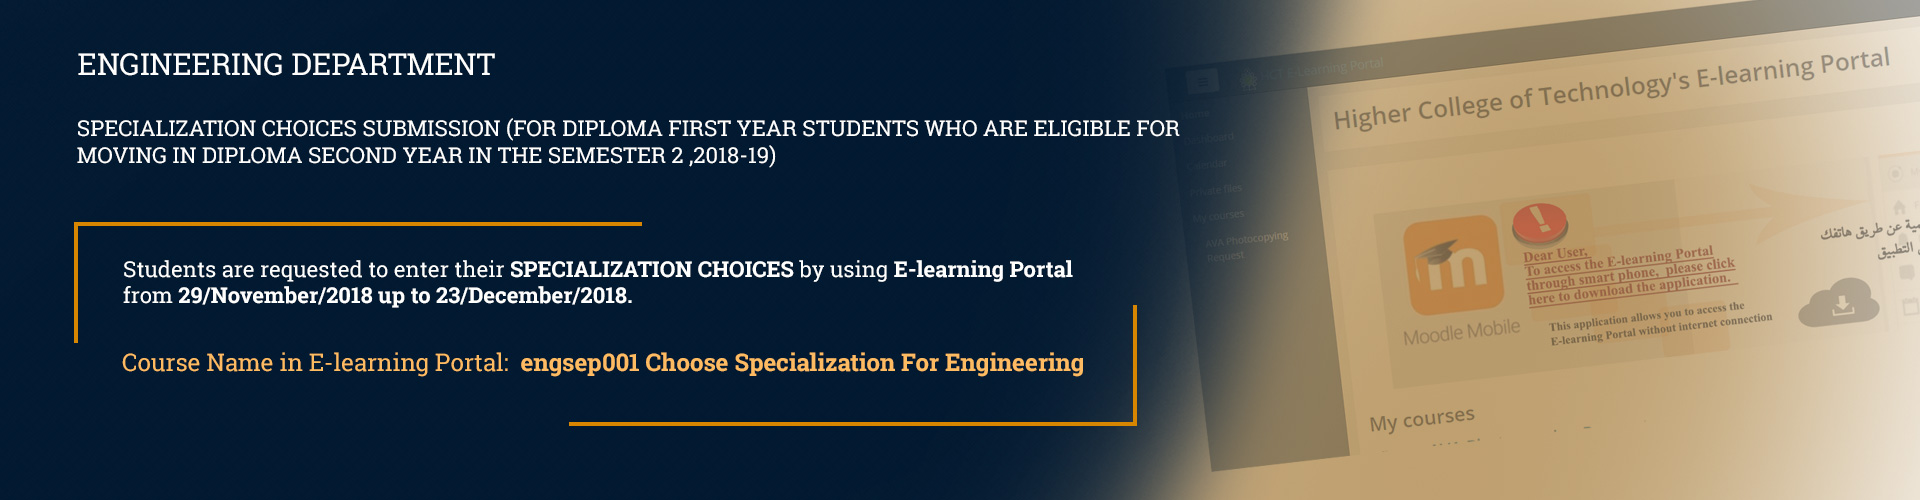 Eng - Specialization Choices Submission